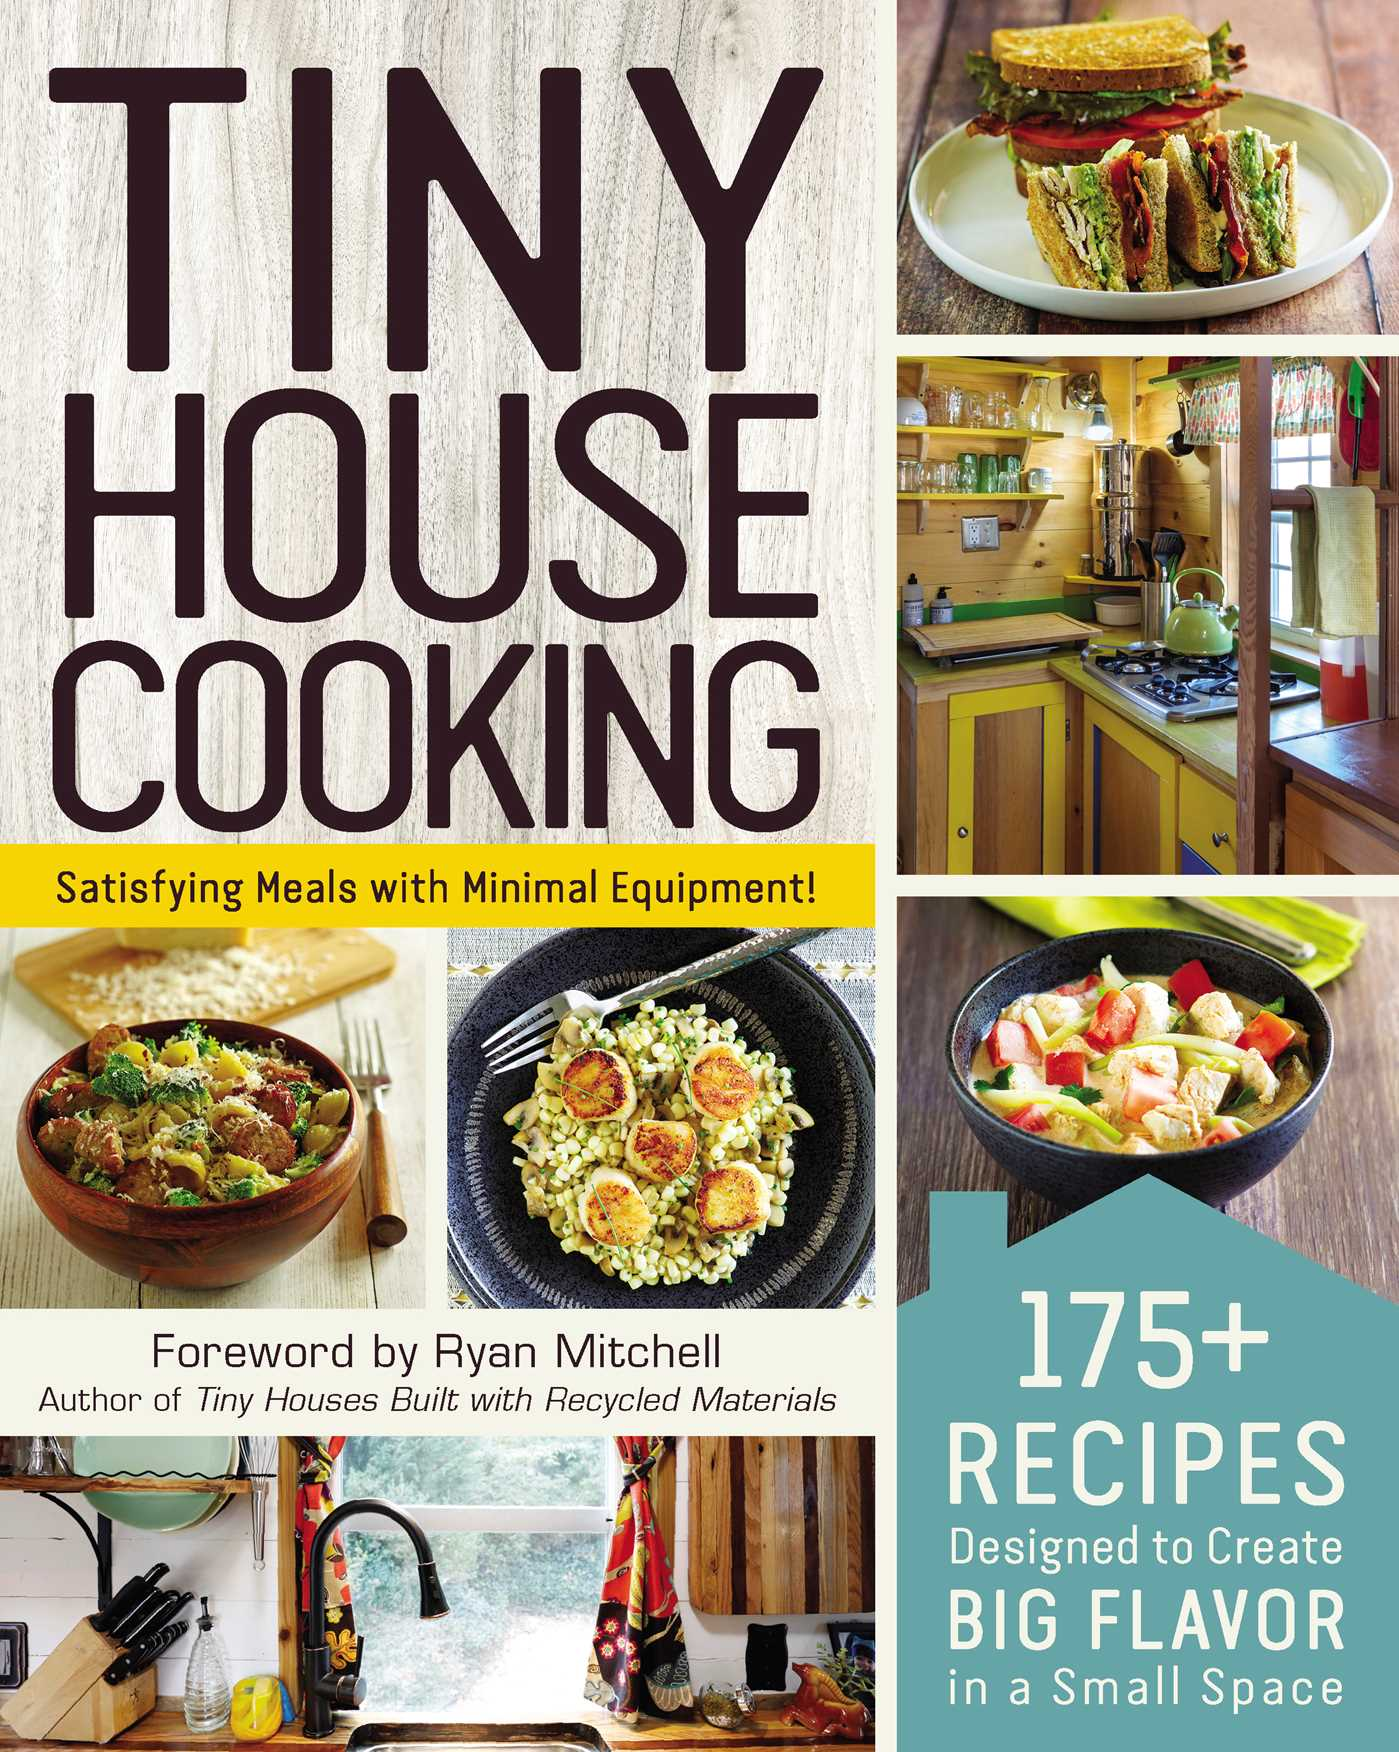 hight resolution of book cover image jpg tiny house cooking